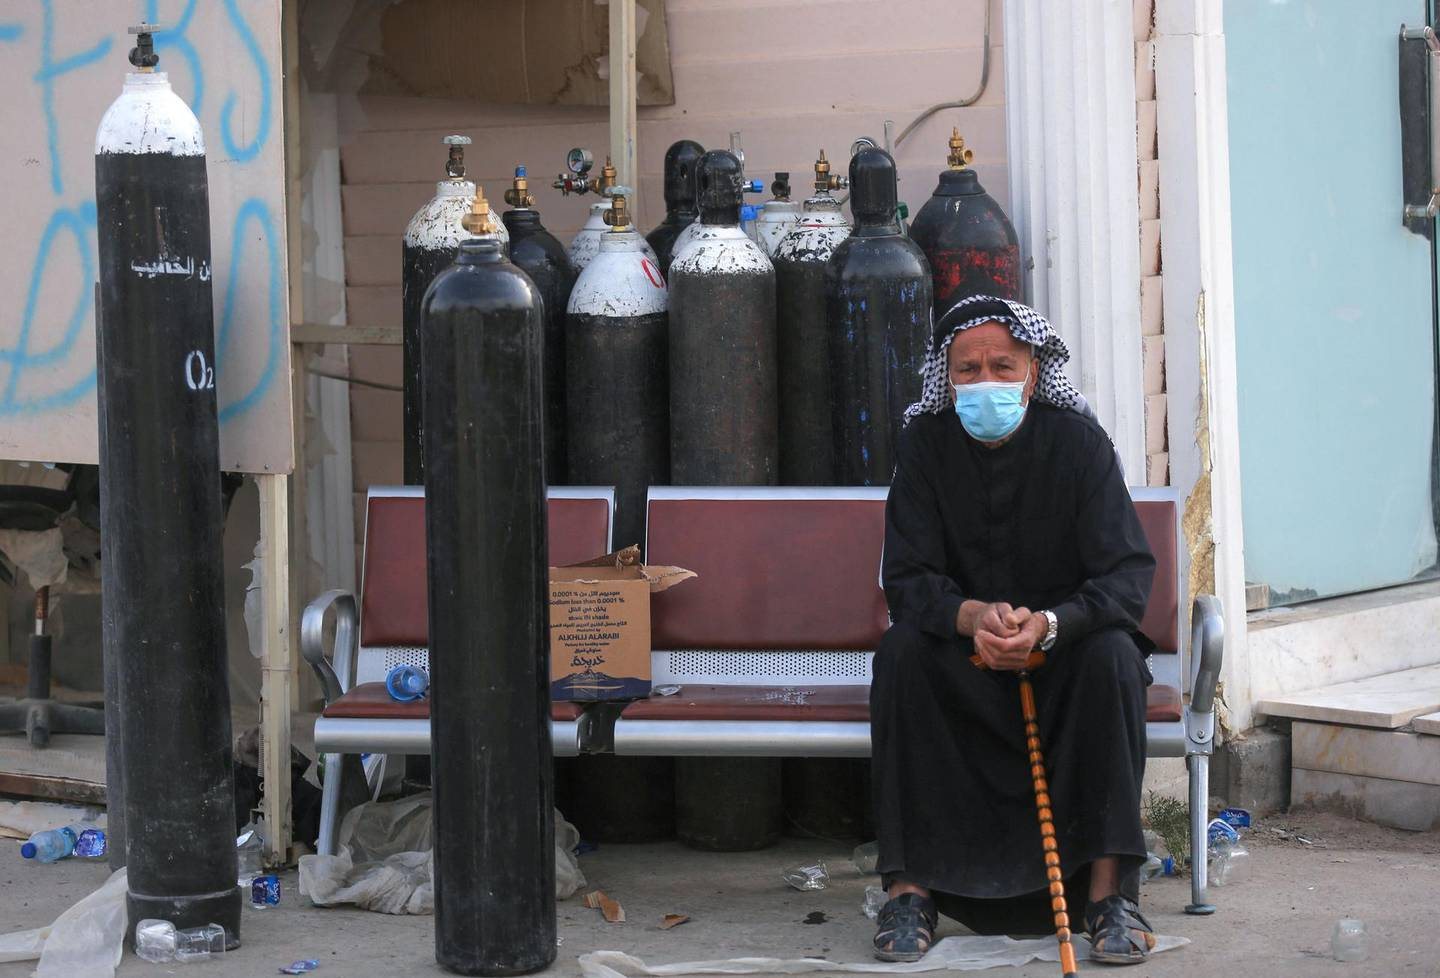 An Iraqi man waits next to oxygen bottles for his wife who is a patient with COVID-19 at the Ibn Al-Khatib Hospital in Baghdad, on April 25, 2021, after a fire erupted in the medical facility reserved for the most severe coronavirus cases. At least 23 people died when a fire broke out in a coronavirus intensive care unit in the capital of Iraq, a country with long-dilapidated health infrastructure facing mounting COVID-19 cases. / AFP / AHMAD AL-RUBAYE